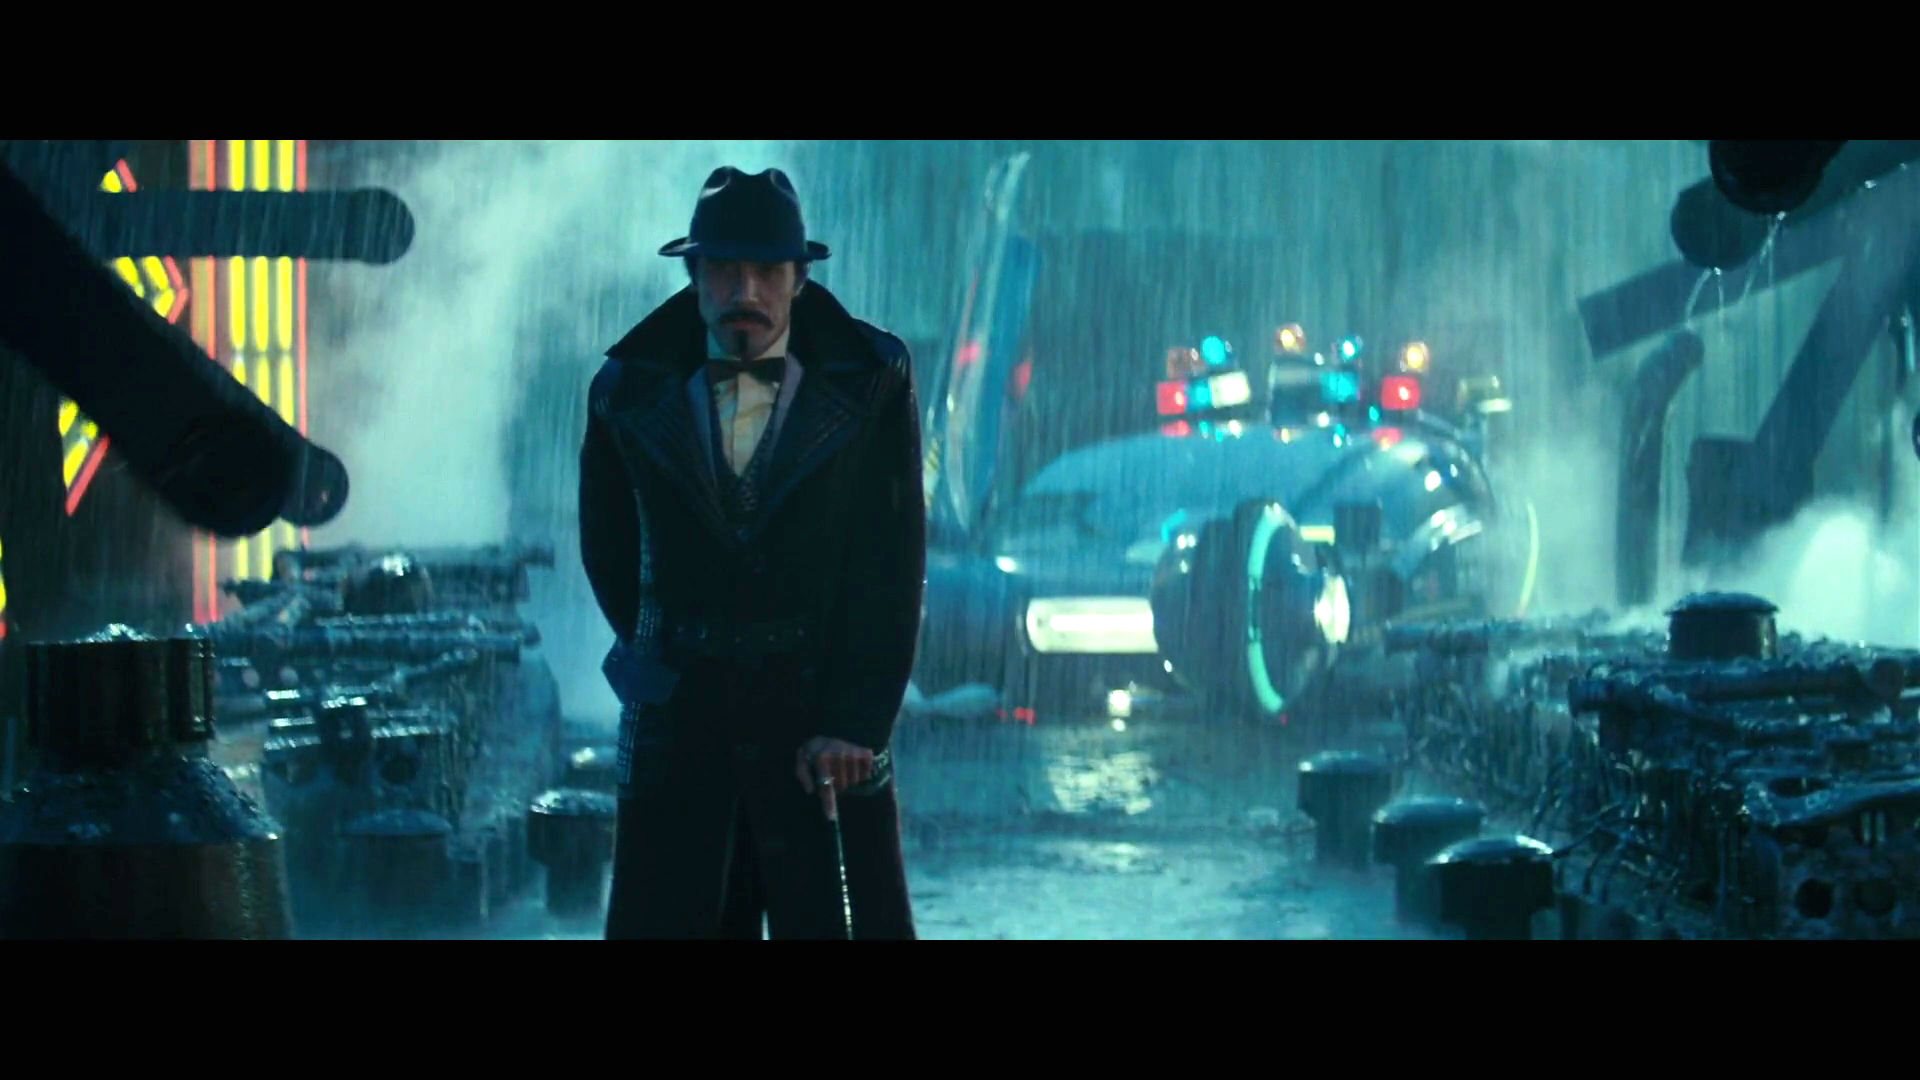 BLADE RUNNER drama sci Fi thriller action rain hf wallpaper background 1920x1080